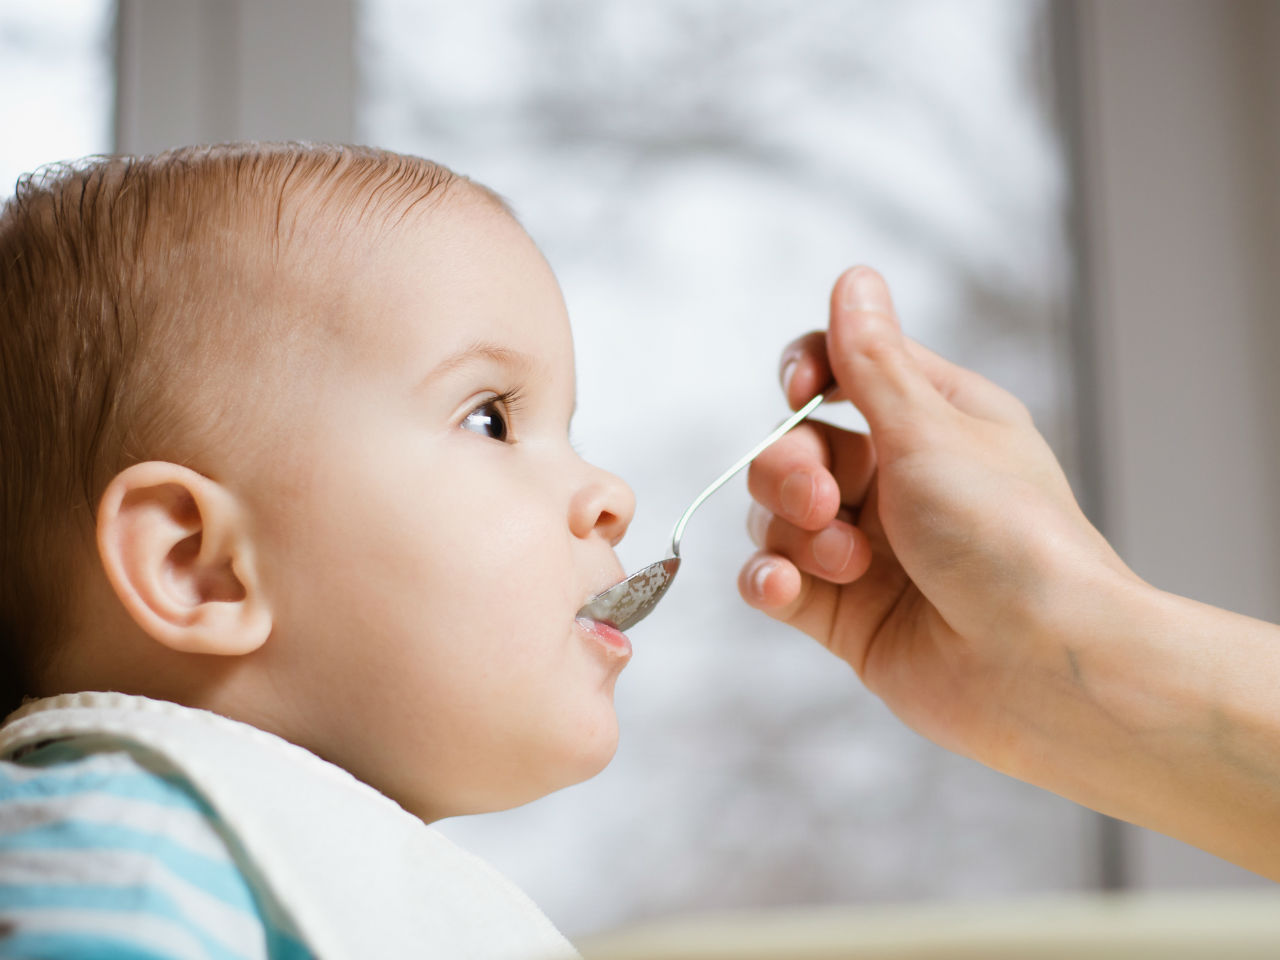 Baby being fed cereal with a spoon